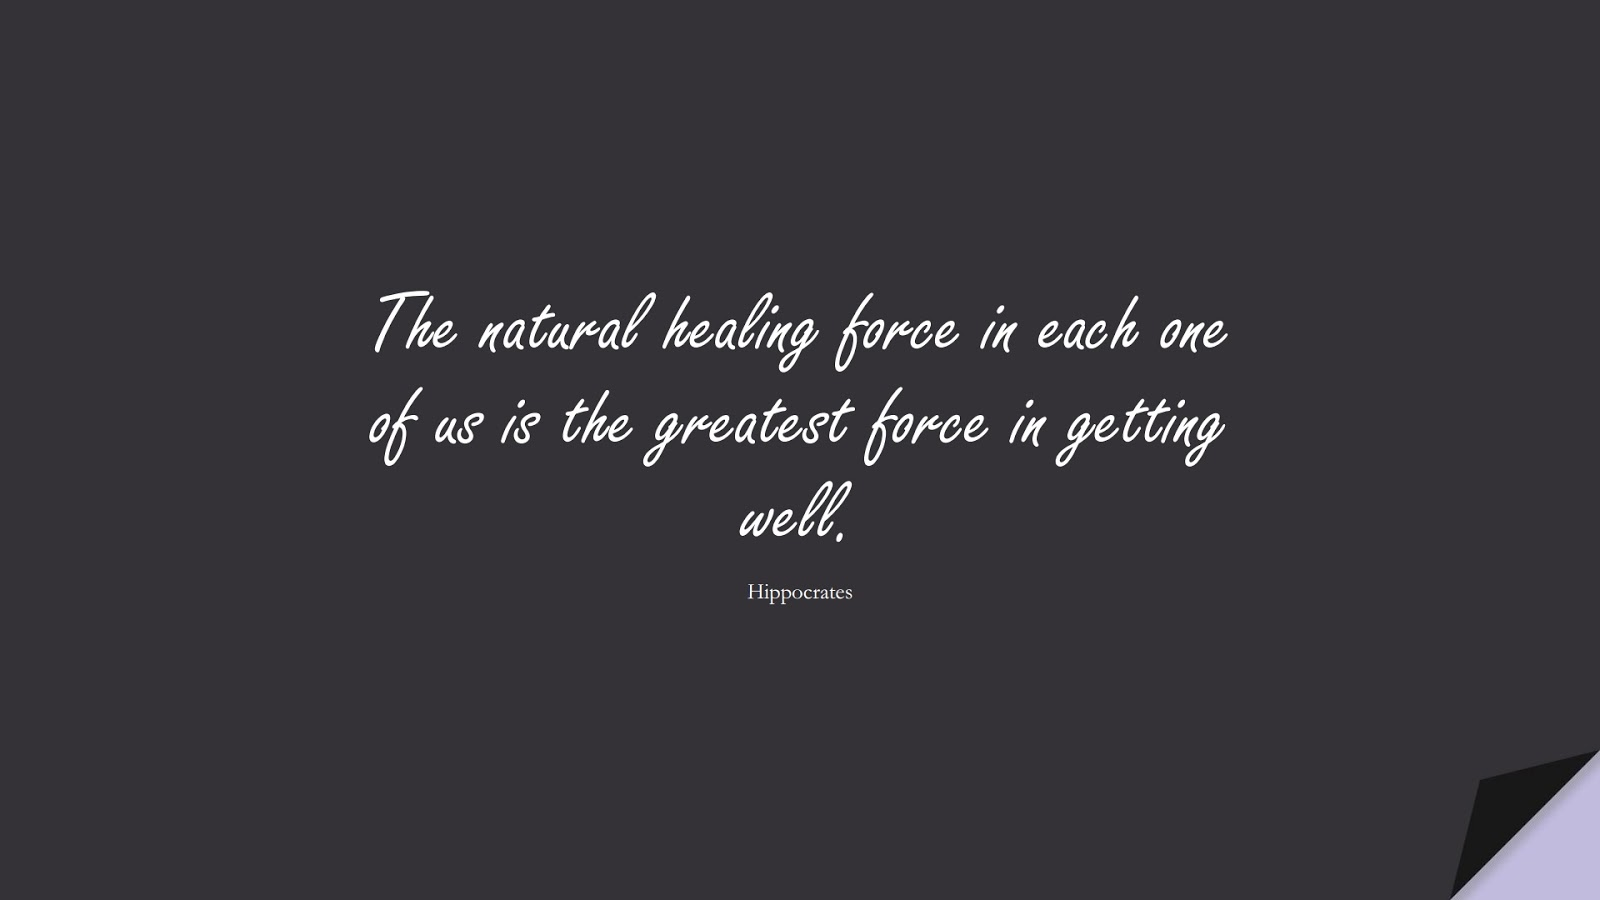 The natural healing force in each one of us is the greatest force in getting well. (Hippocrates);  #HealthQuotes